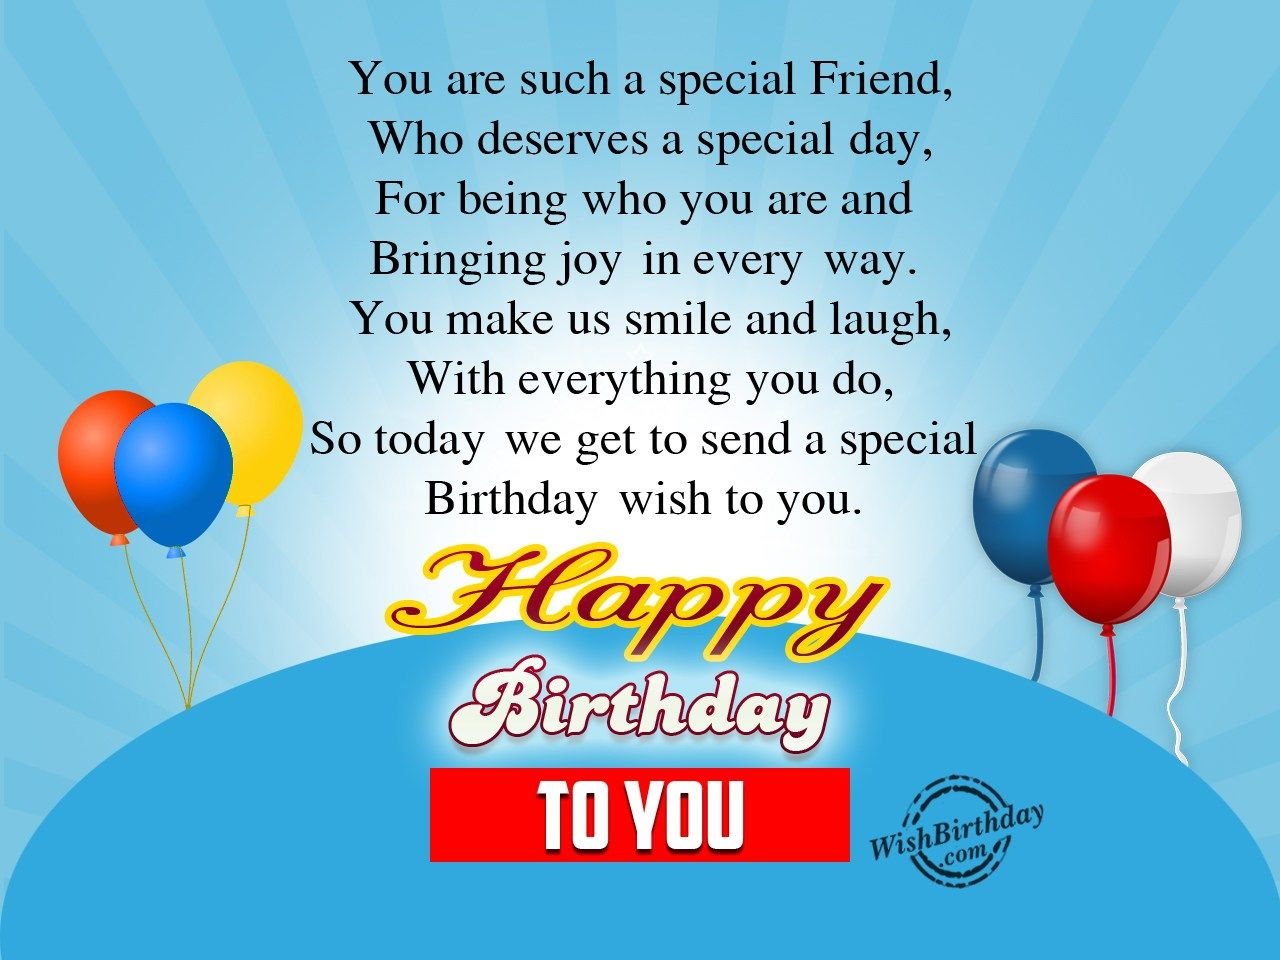 Sending special wishes to my dear friend birthday greetings greeting birthday wishes for a special friend m4hsunfo Images